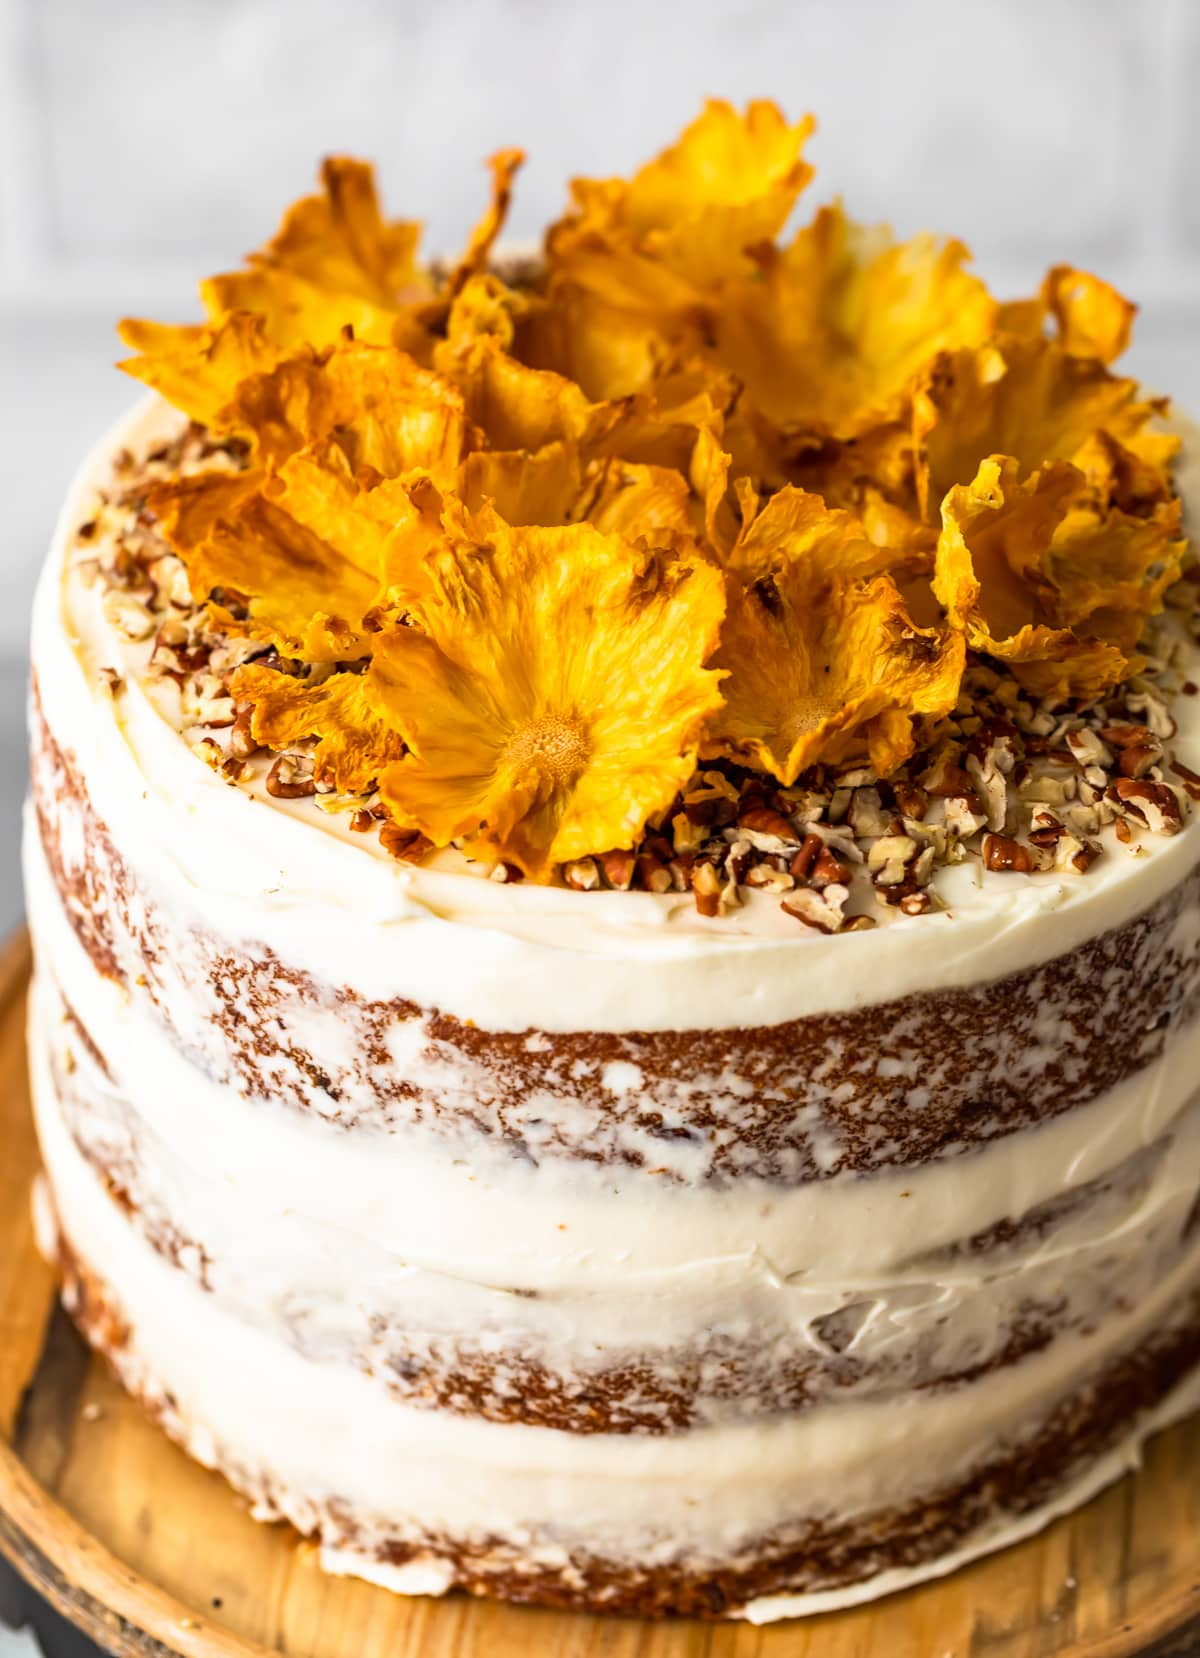 banana pineapple cake with pineapple flowers